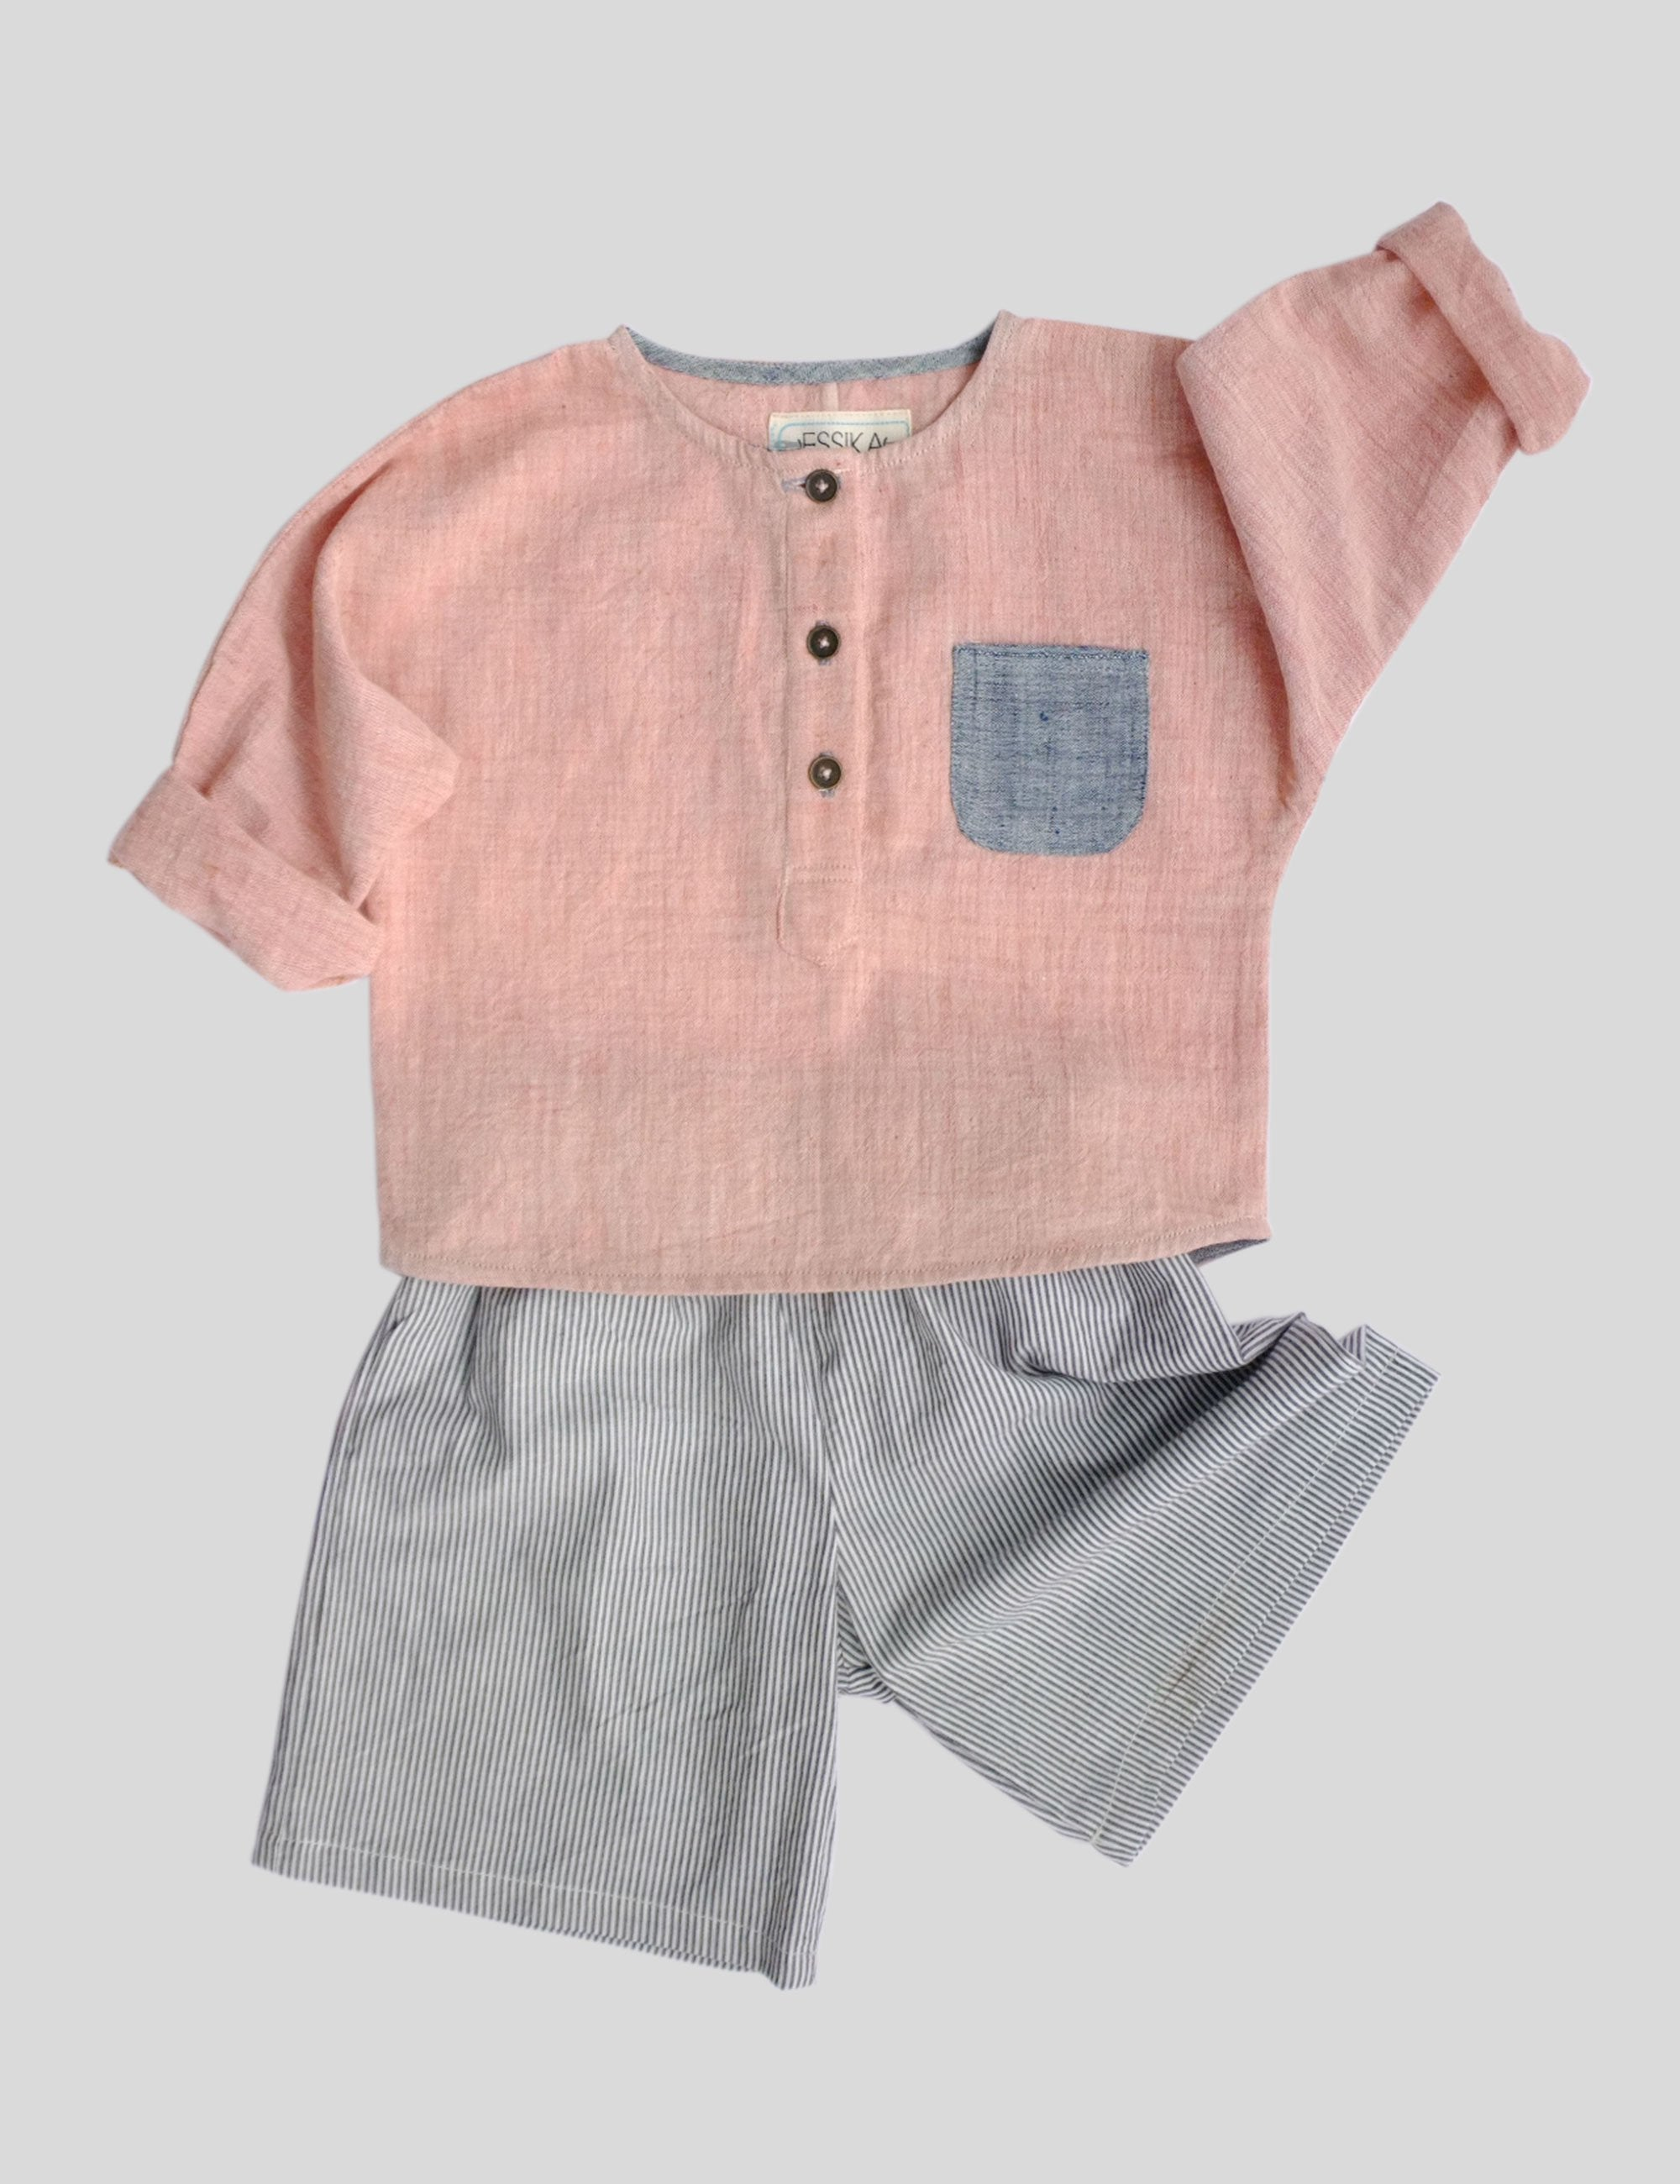 Loose Fit Lollipop Shirt with Placket in Pink for Boys